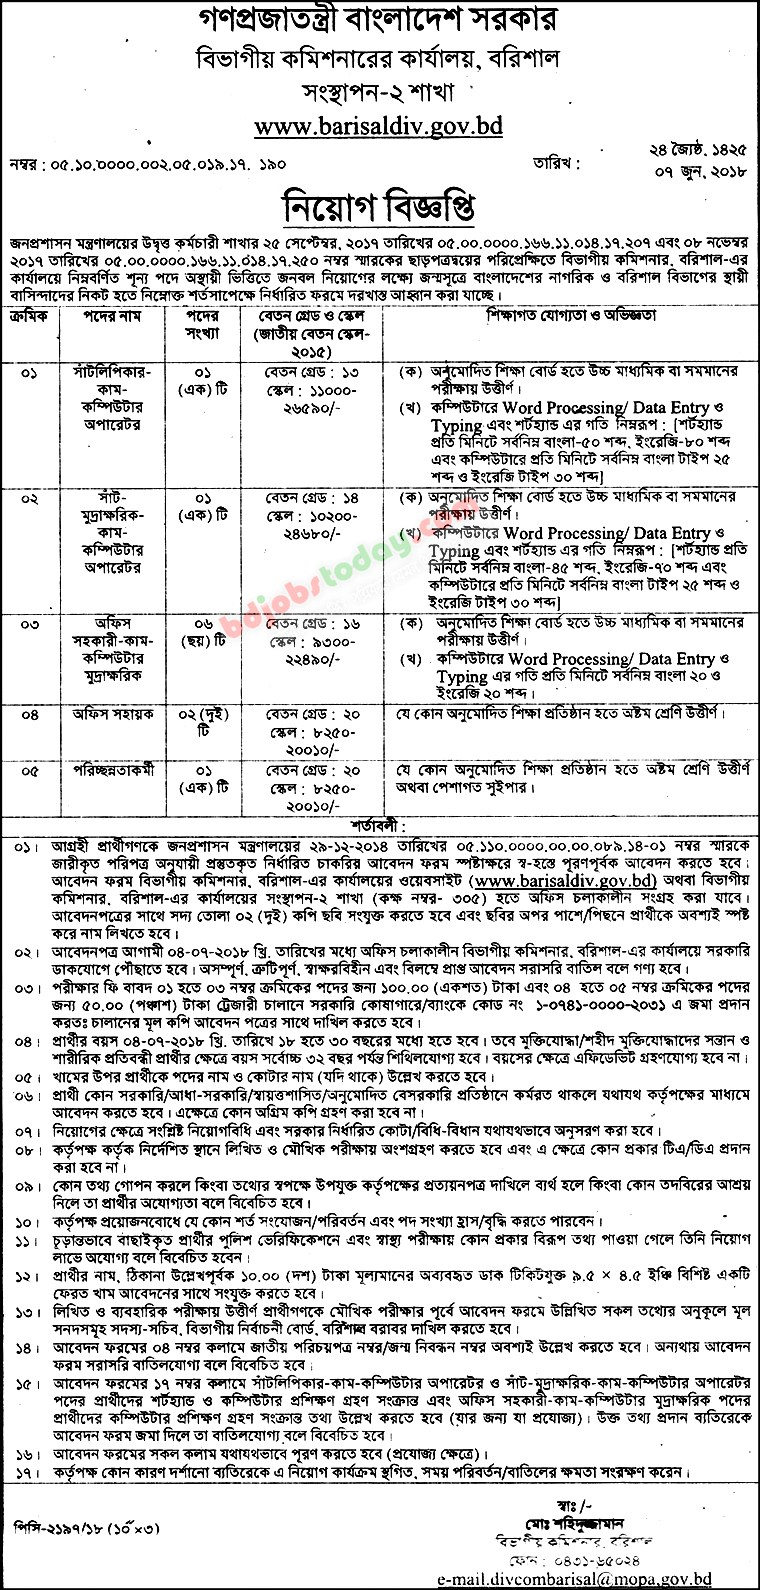 Office of Divisional Commissioner, Barisal jobs